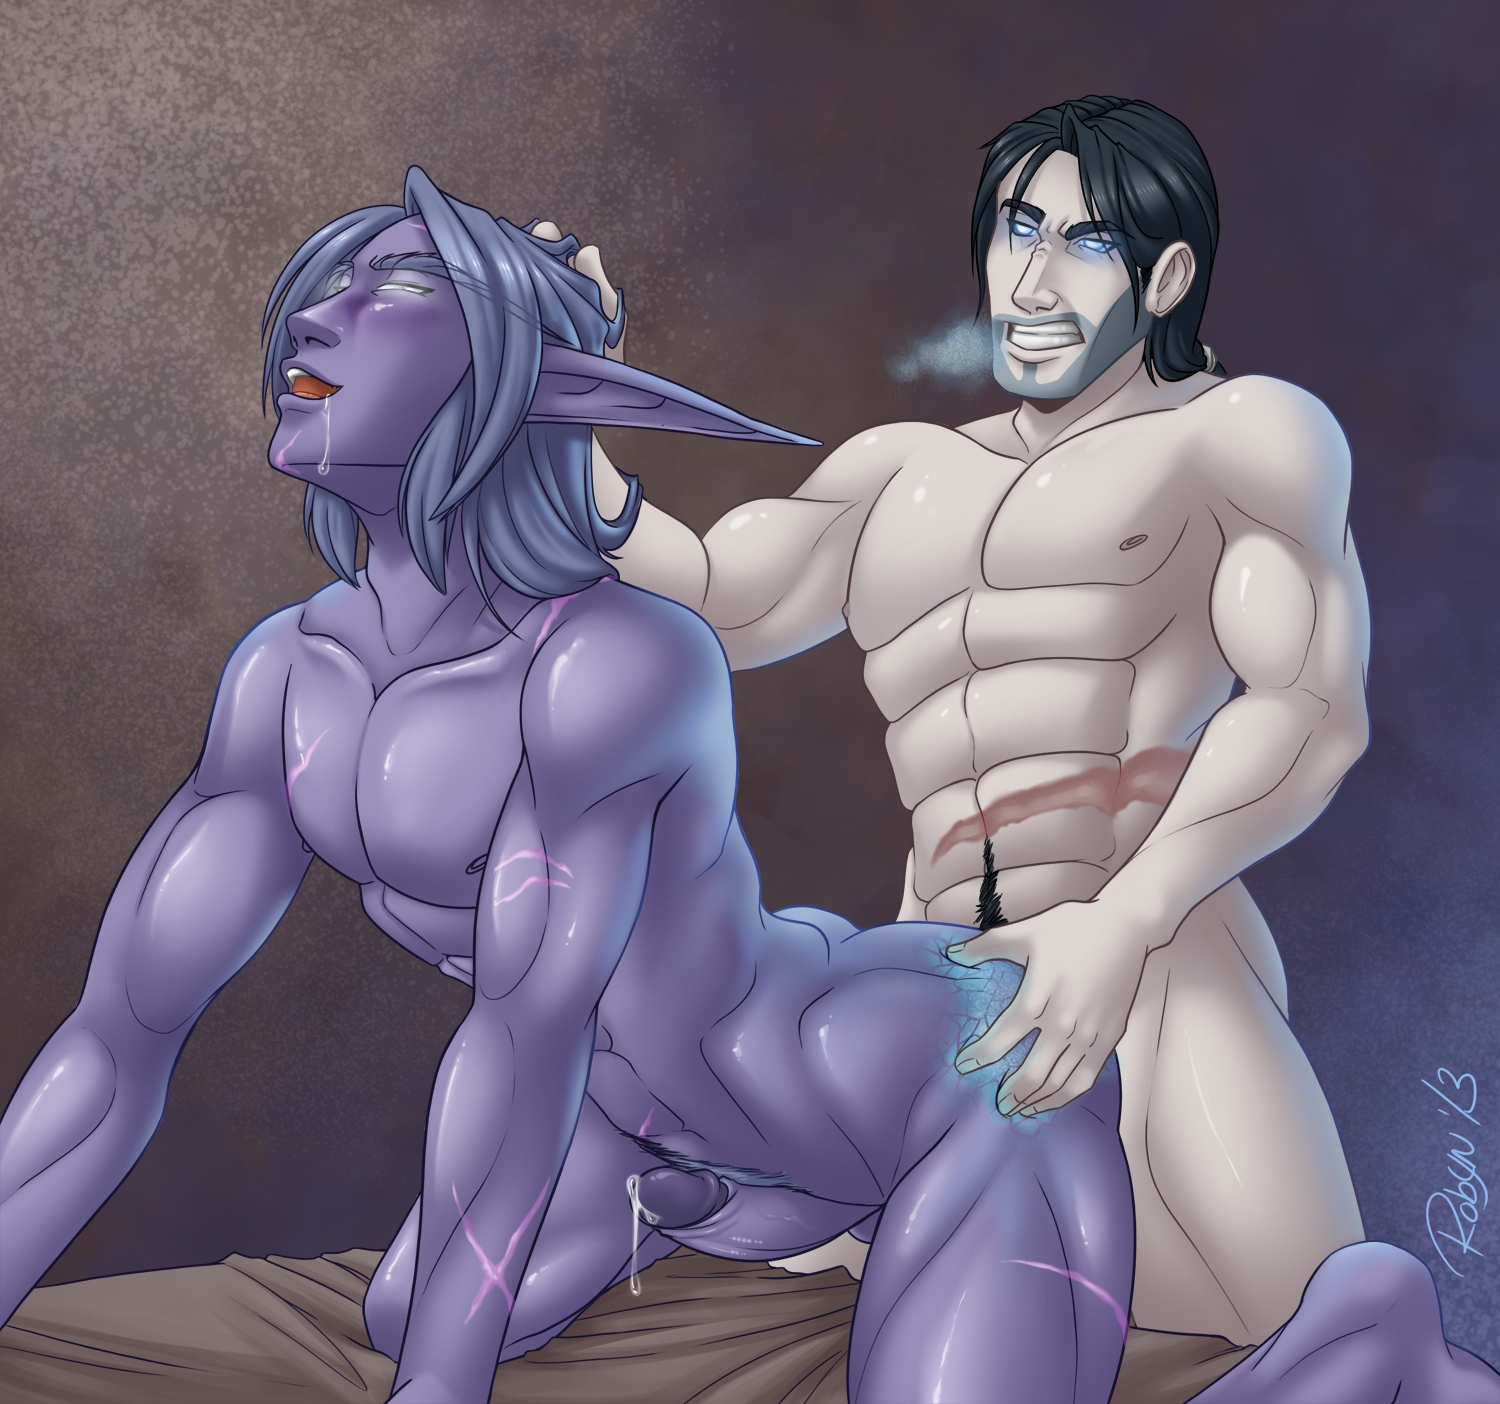 Night elf elf hentai - top 100  erotic comic